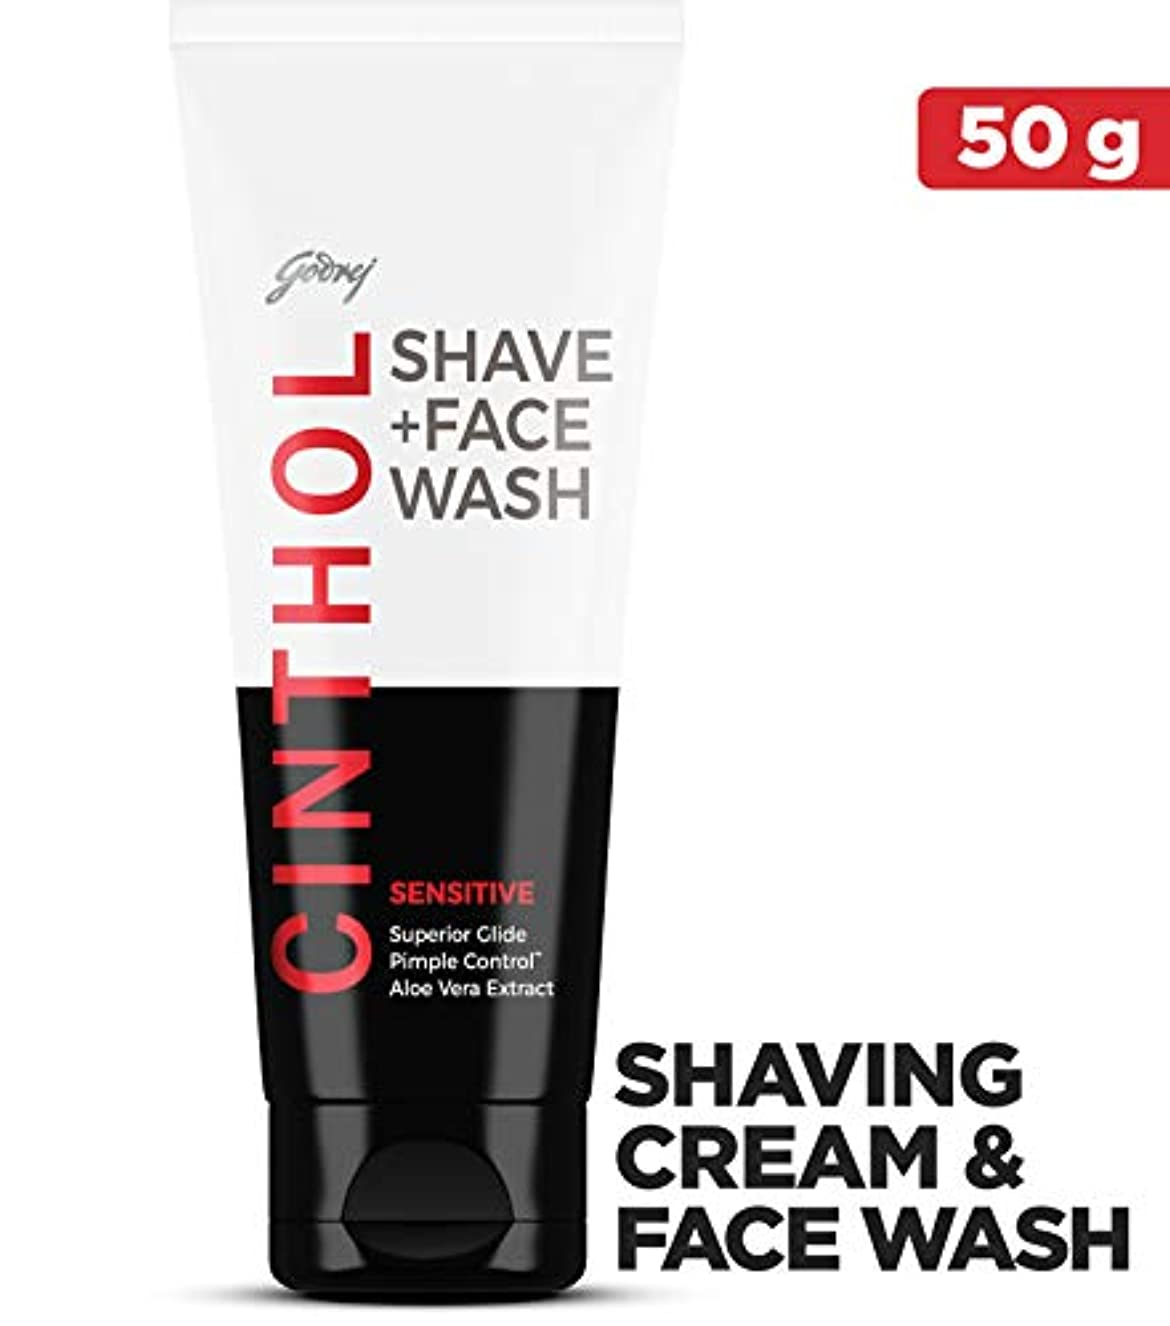 排出連鎖意志Cinthol Sensitive Shaving + Face Wash, 50g